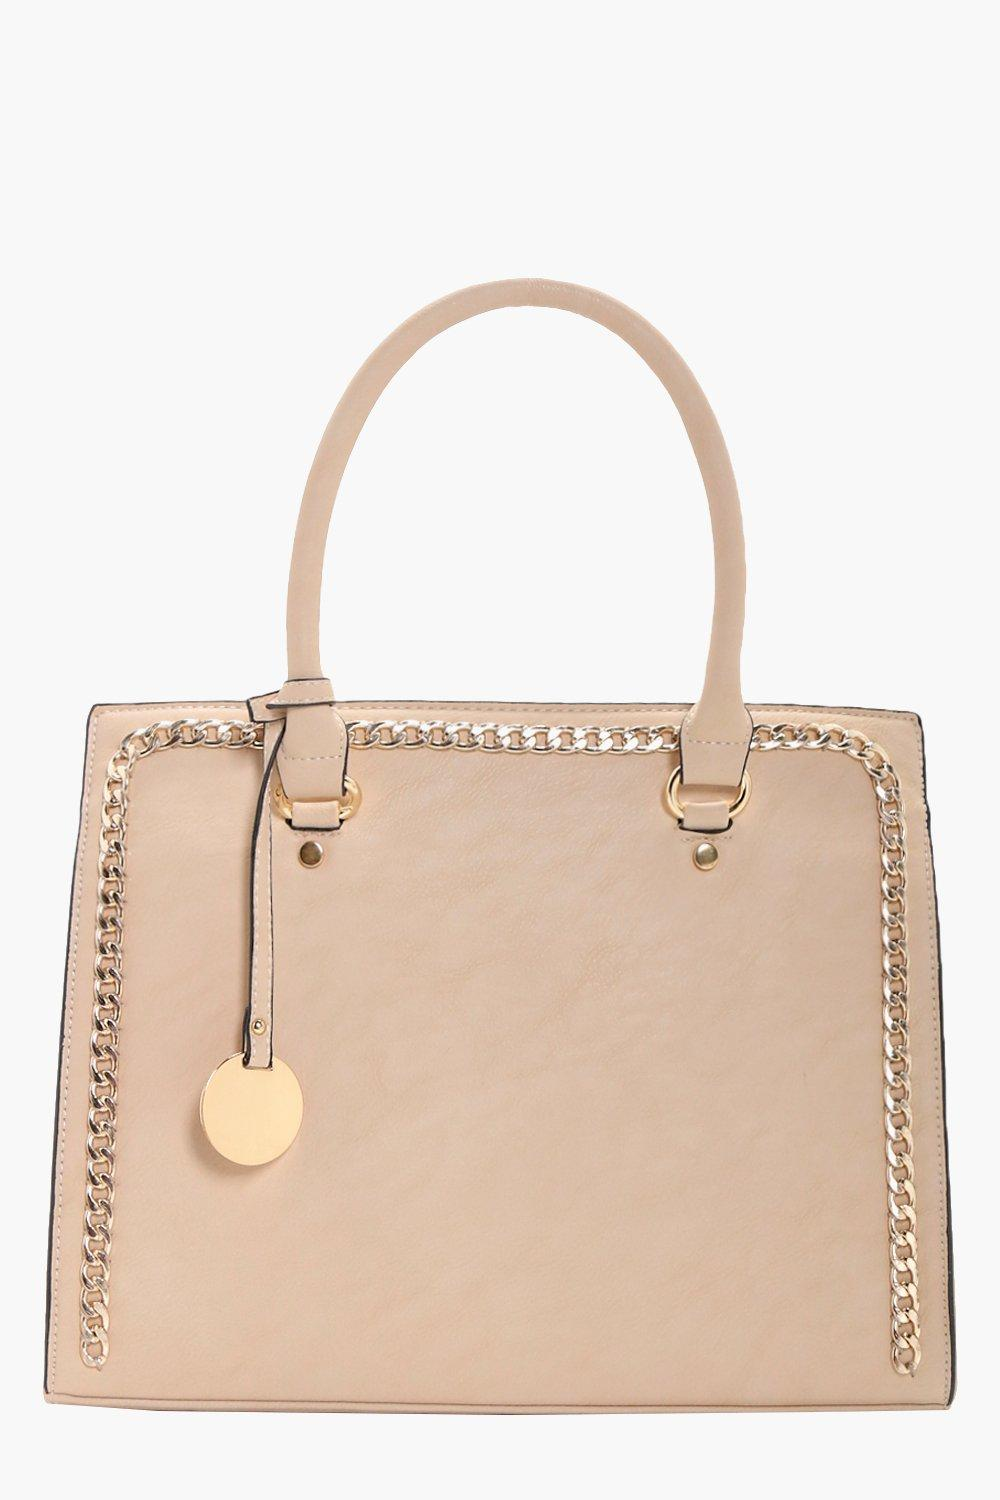 Chain Detail Tote - beige - Sophia Chain Detail To